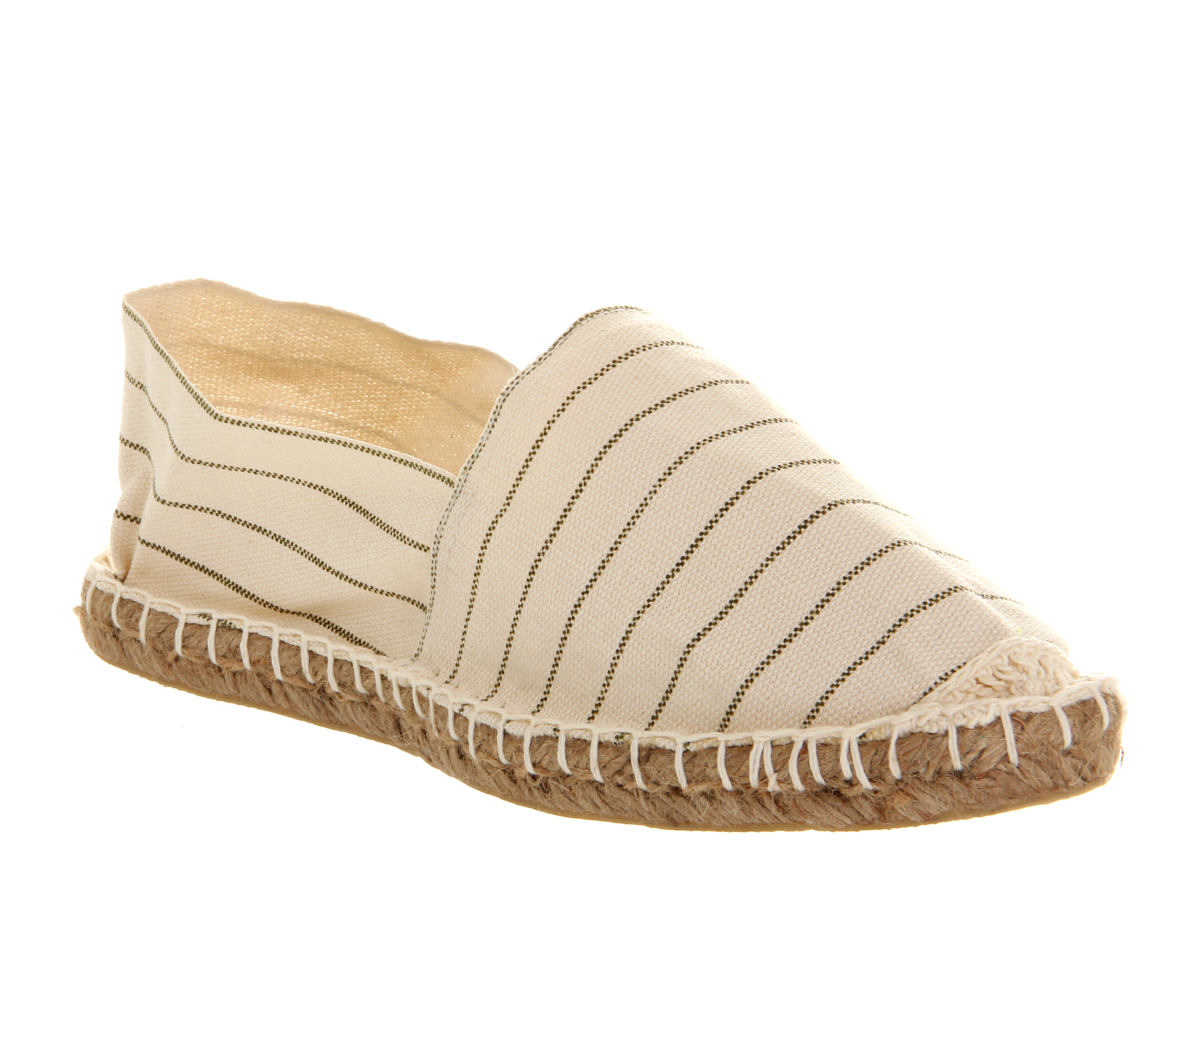 Office - Espadrilles  (Limited sizes, review all options)